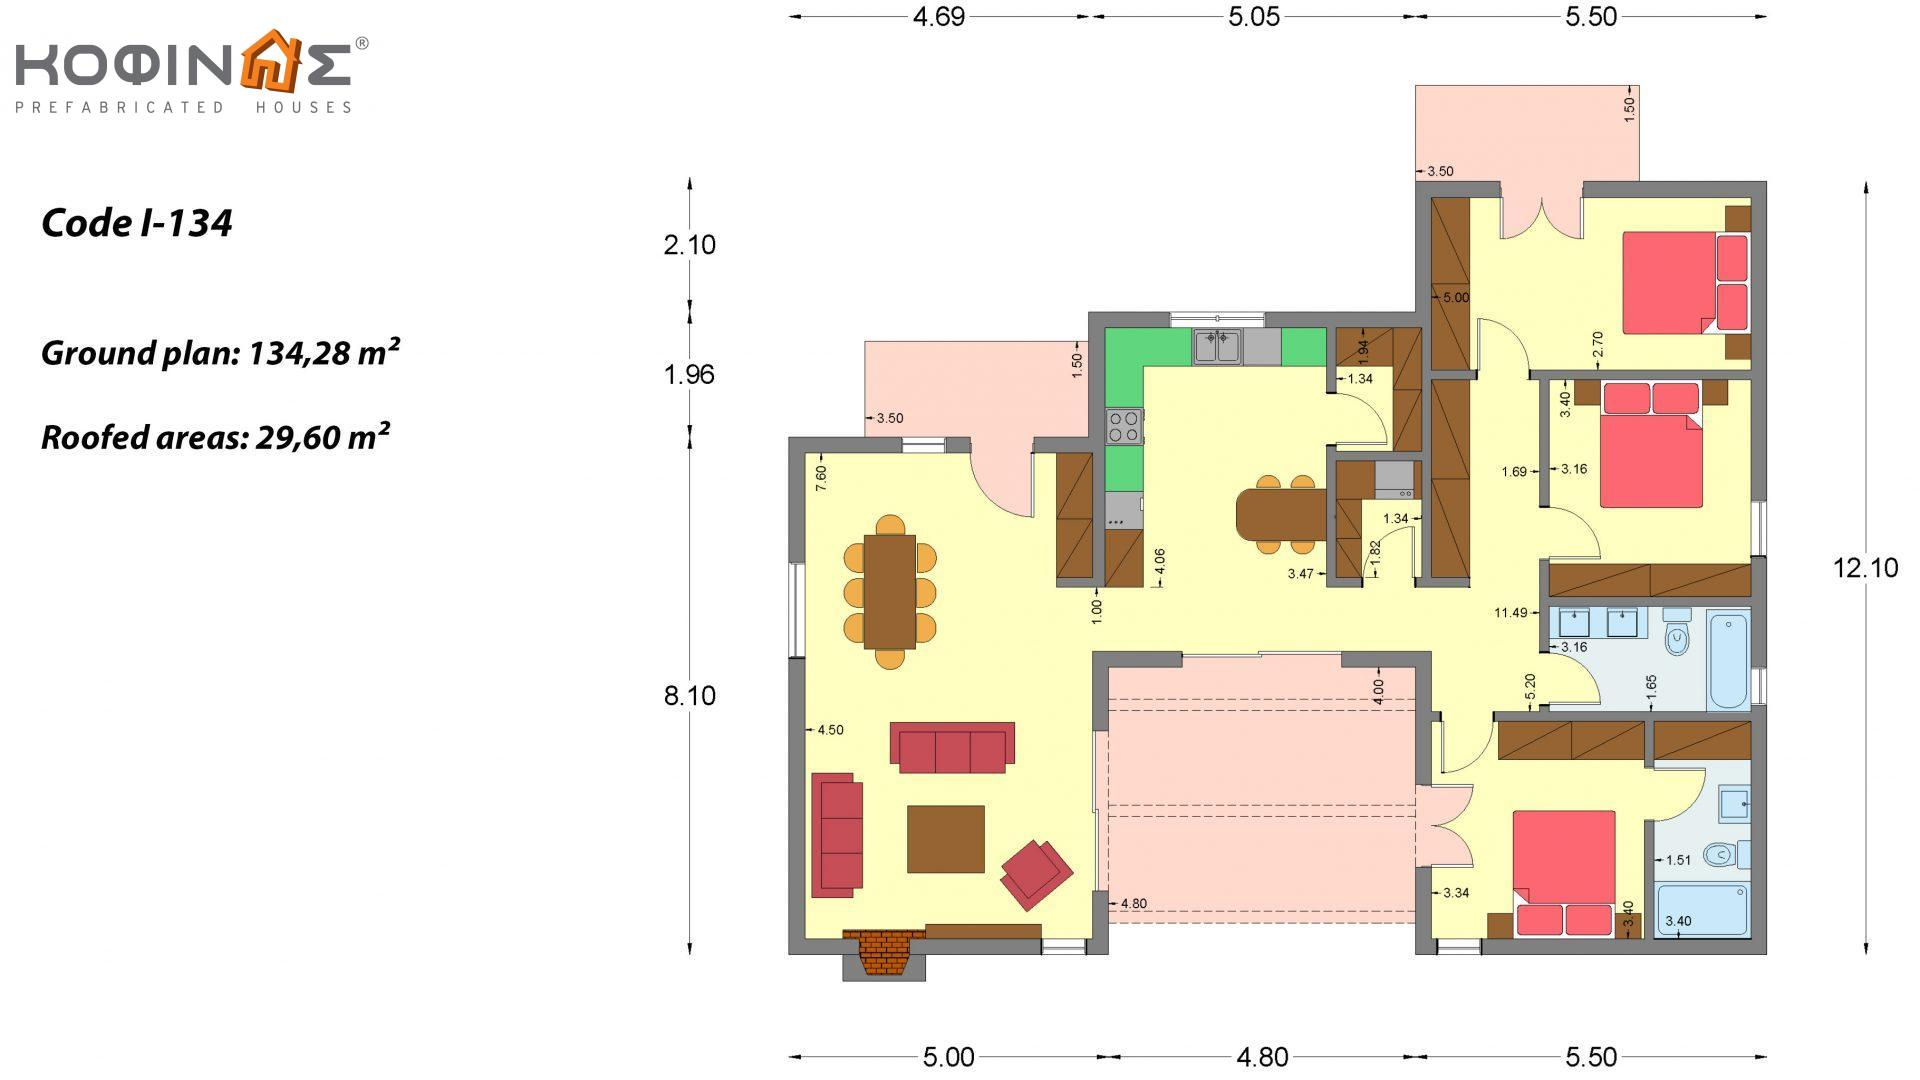 1-story house I-134, total surface of 134.28 m², roofed areas 29.60 m²